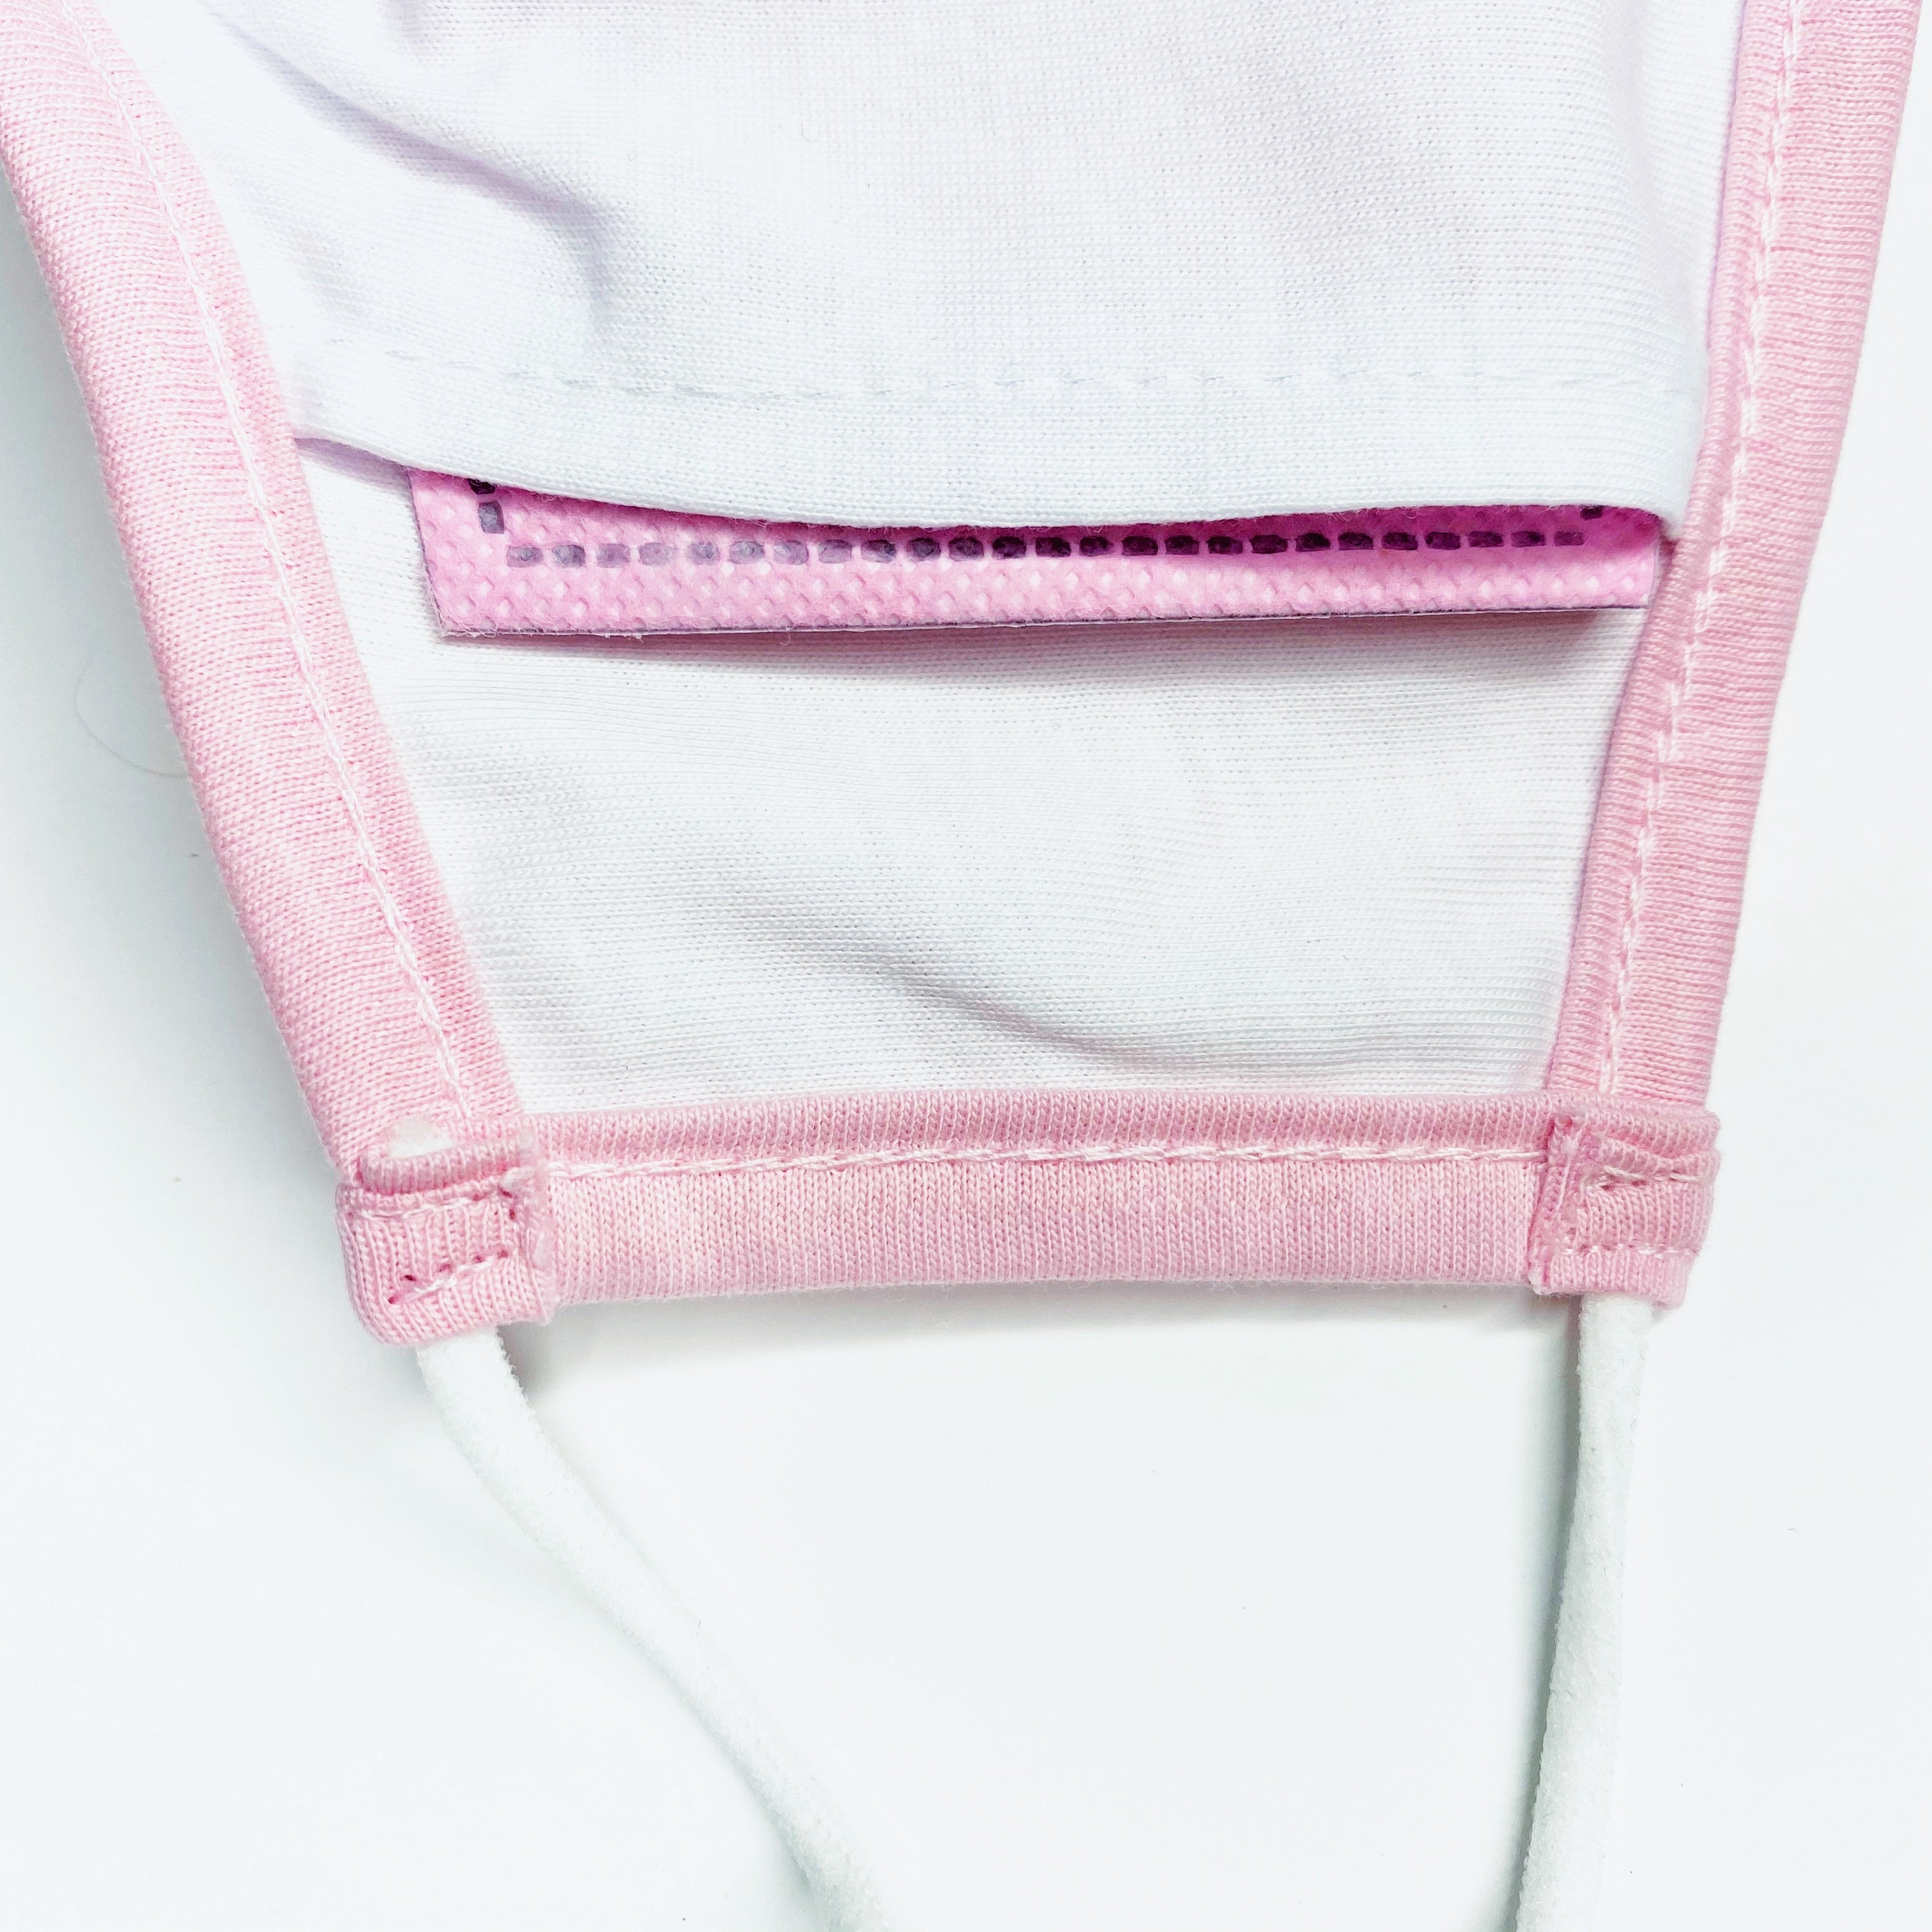 Pink breast cancer mask interior with filter pocket to insert pink protective filter